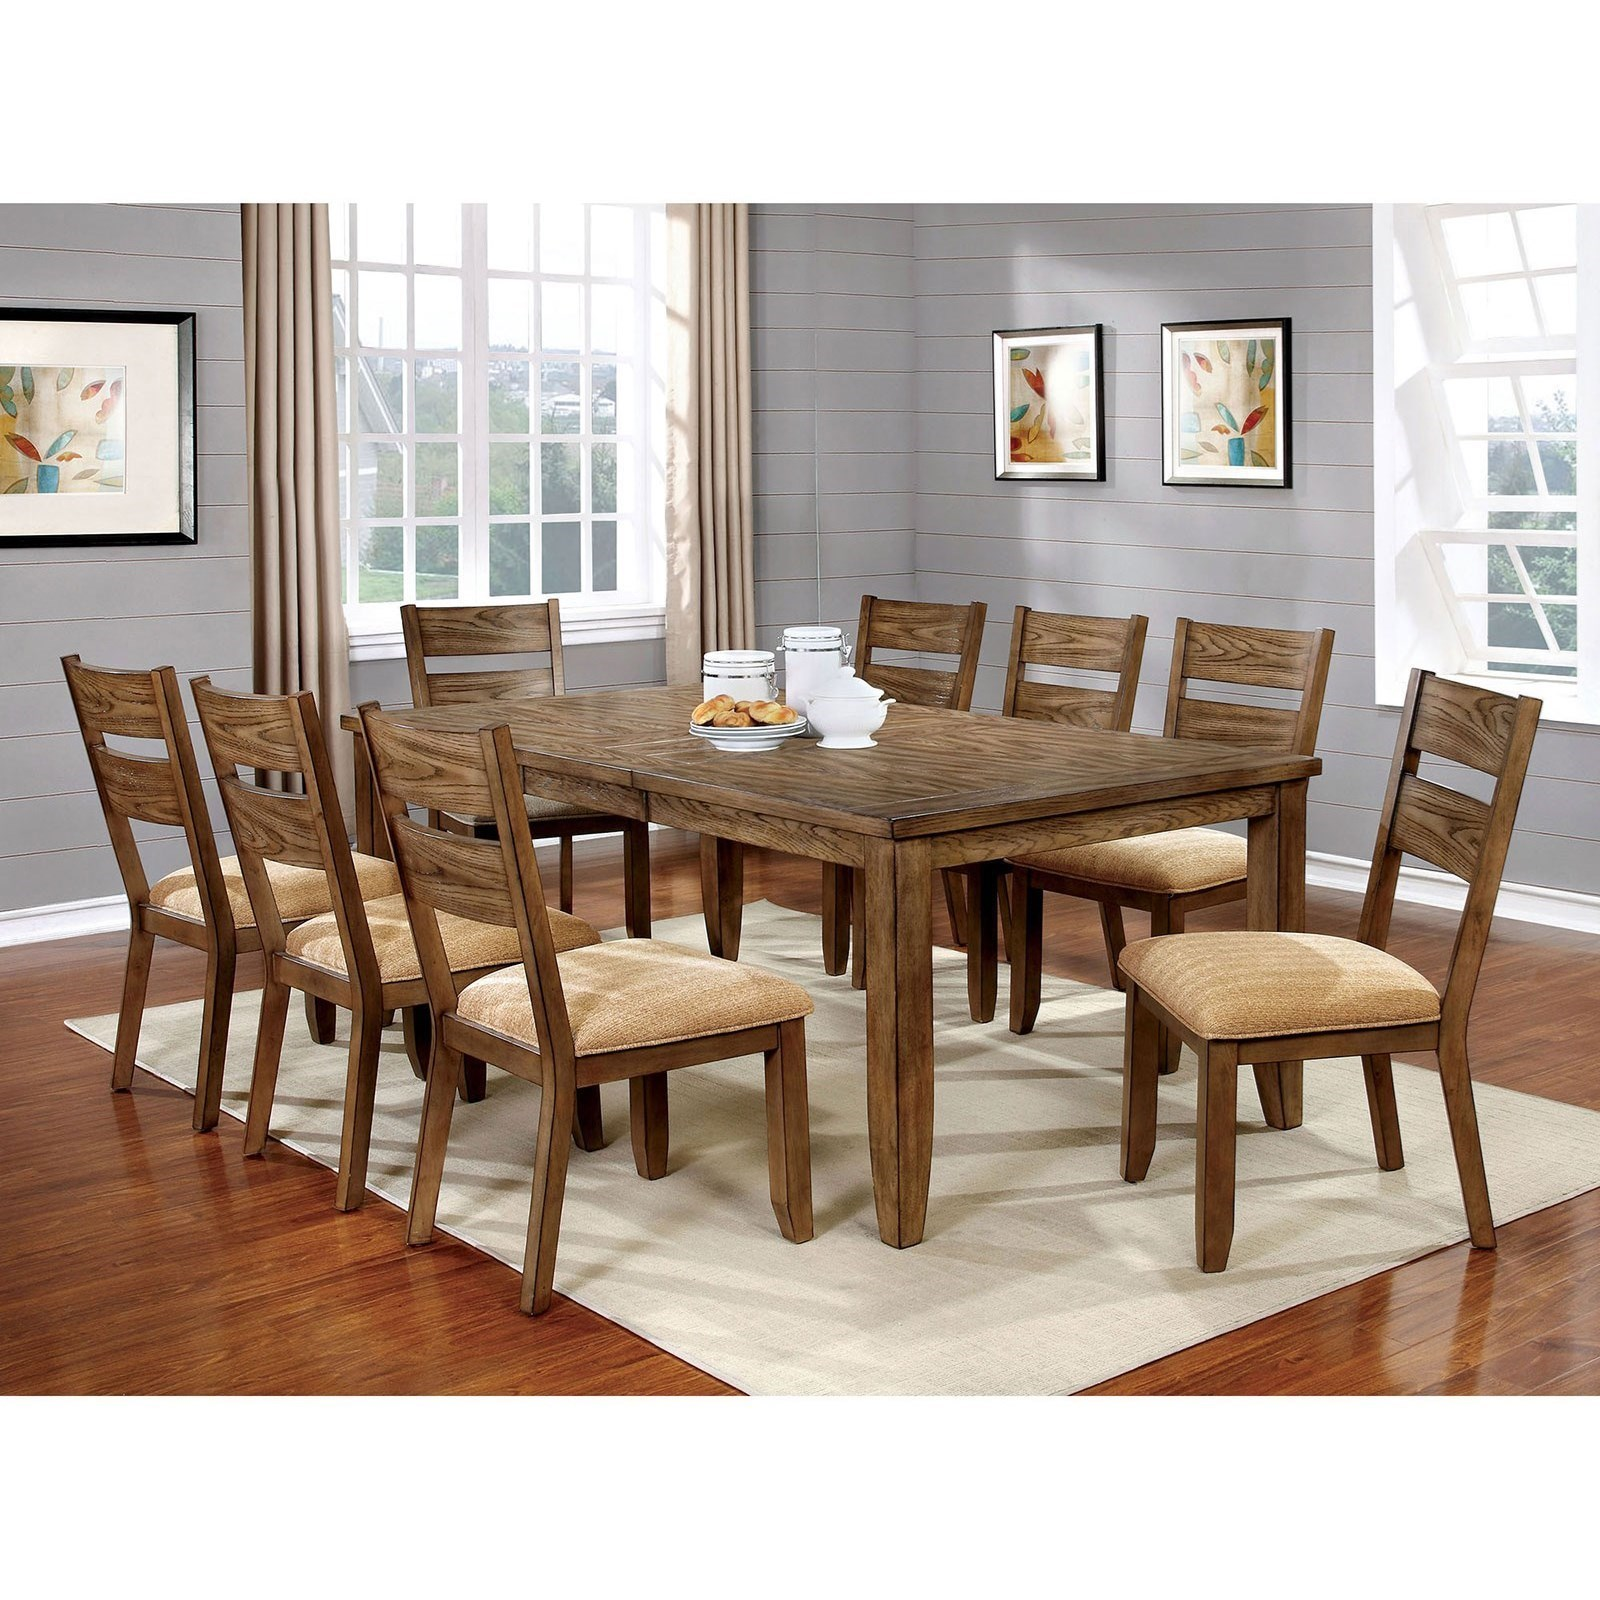 8 Chair Dining Set Ava 9 Piece Casual Dining Set With 1 Table Leaf By Furniture Of America At Furniture Superstore Nm